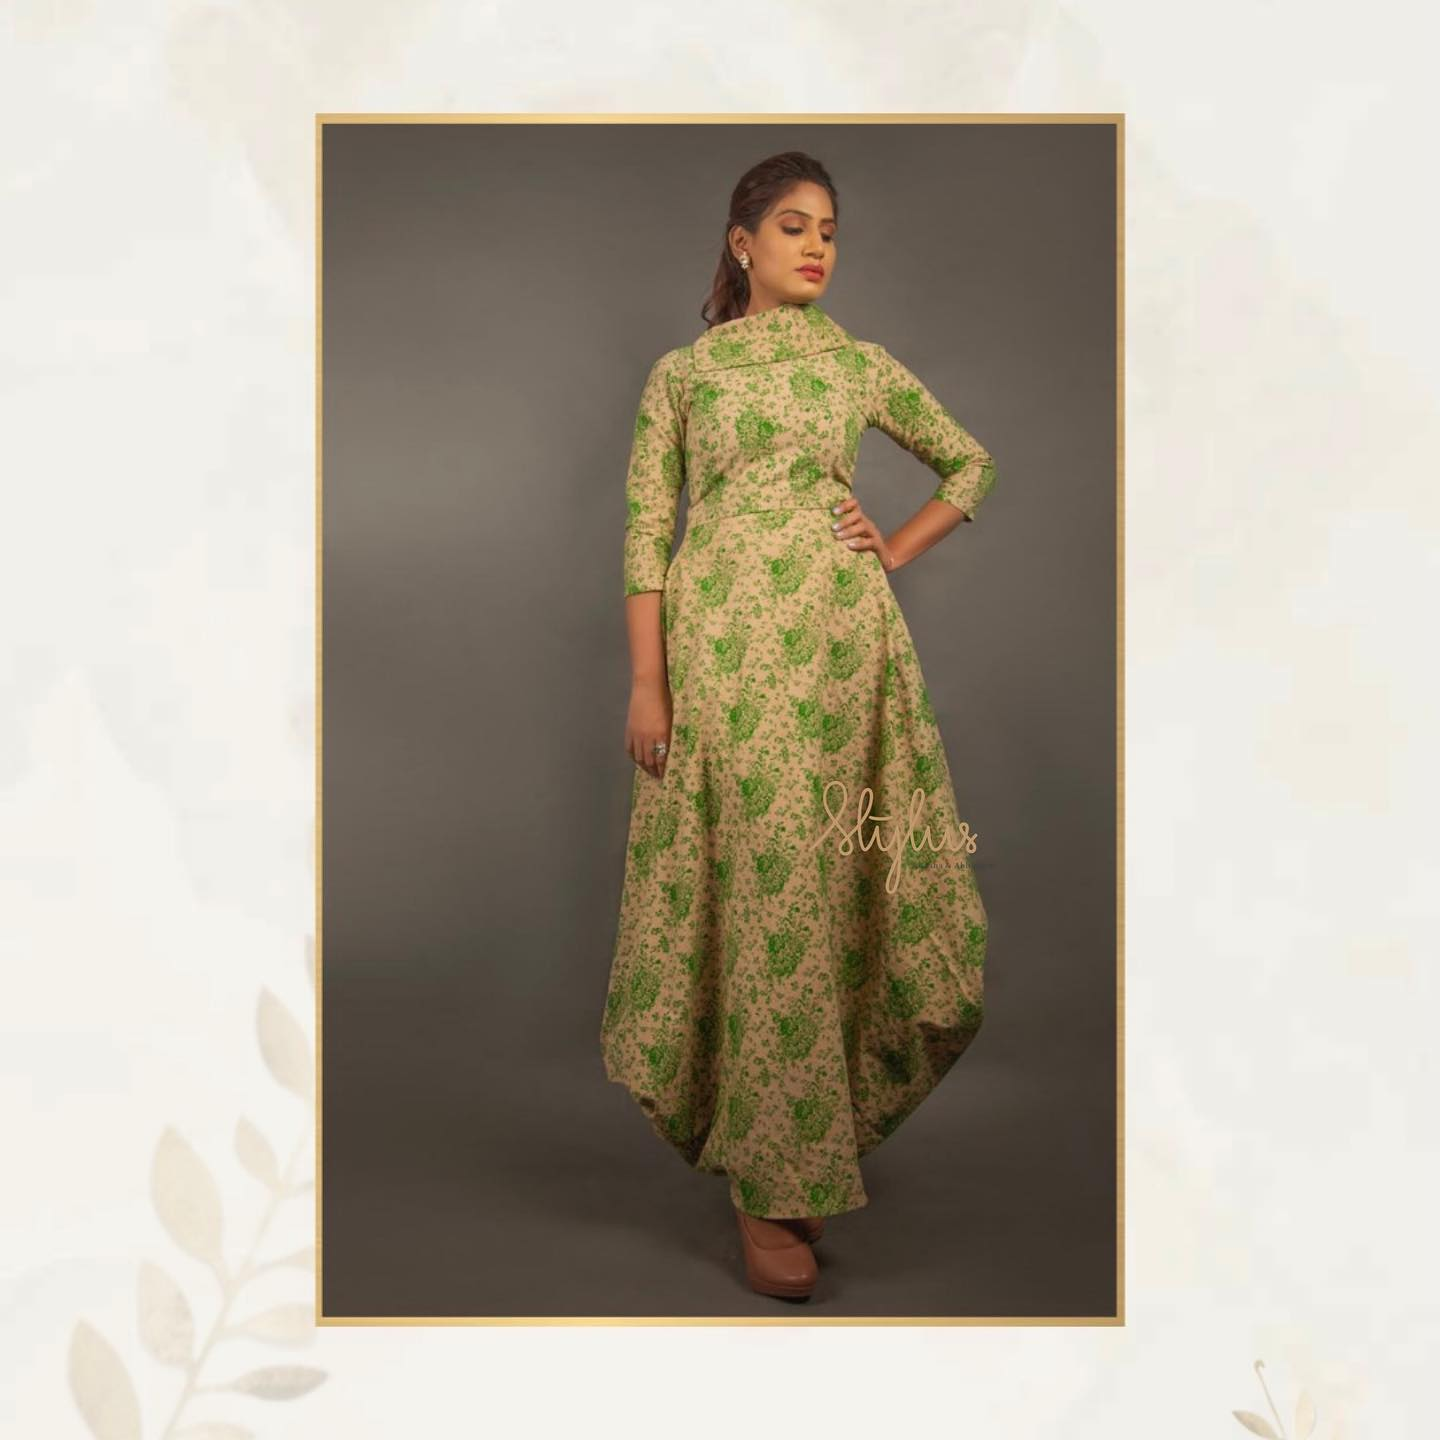 Another glamorous outfit with the amalgamation of shades of green. A beautiful printed one piece with a designer look. Fashionable and chiq. 2021-05-20